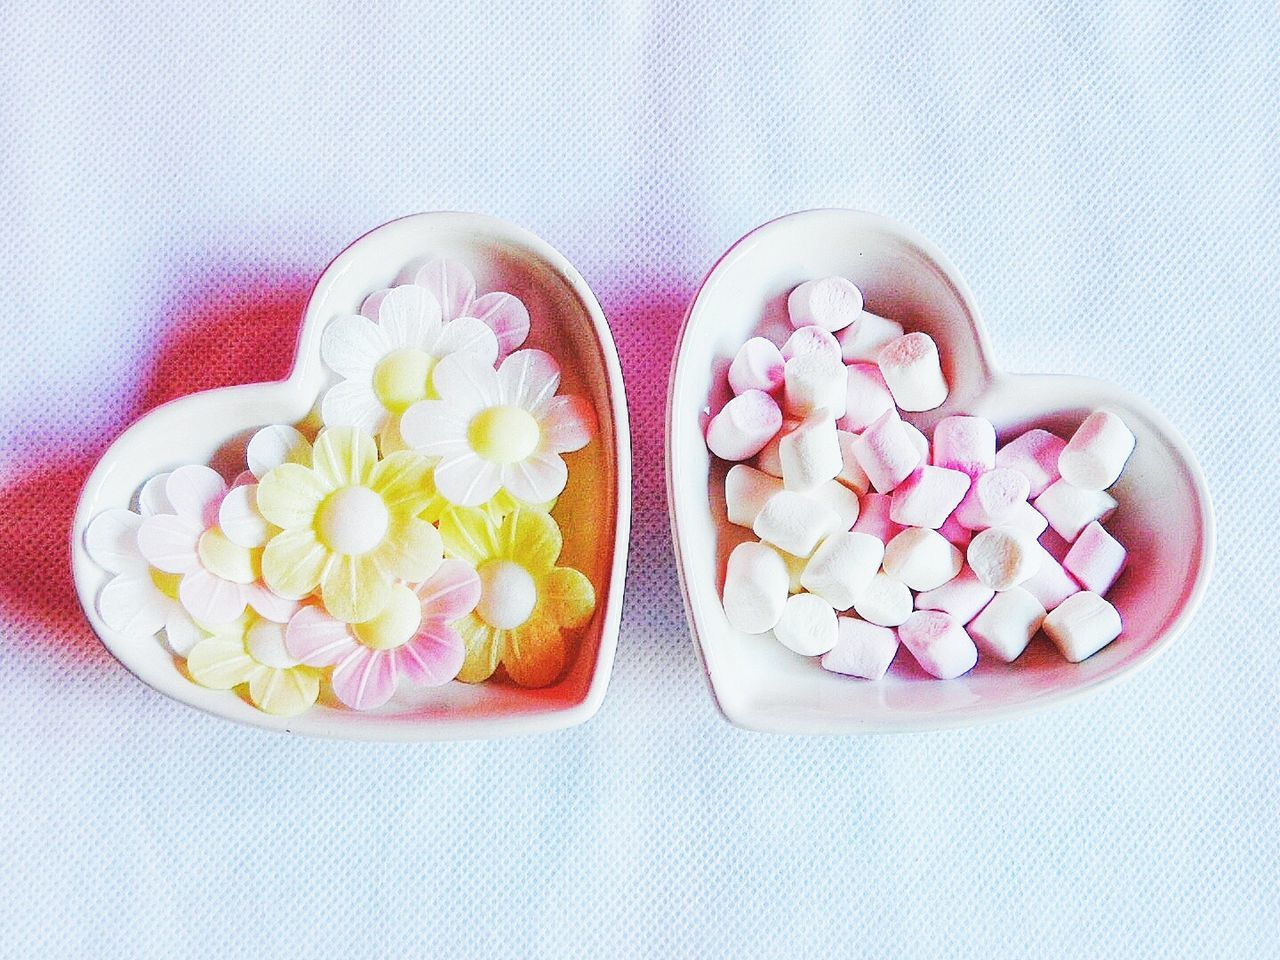 Directly Above View Of Flower Shape Candies And Marshmallows In Containers